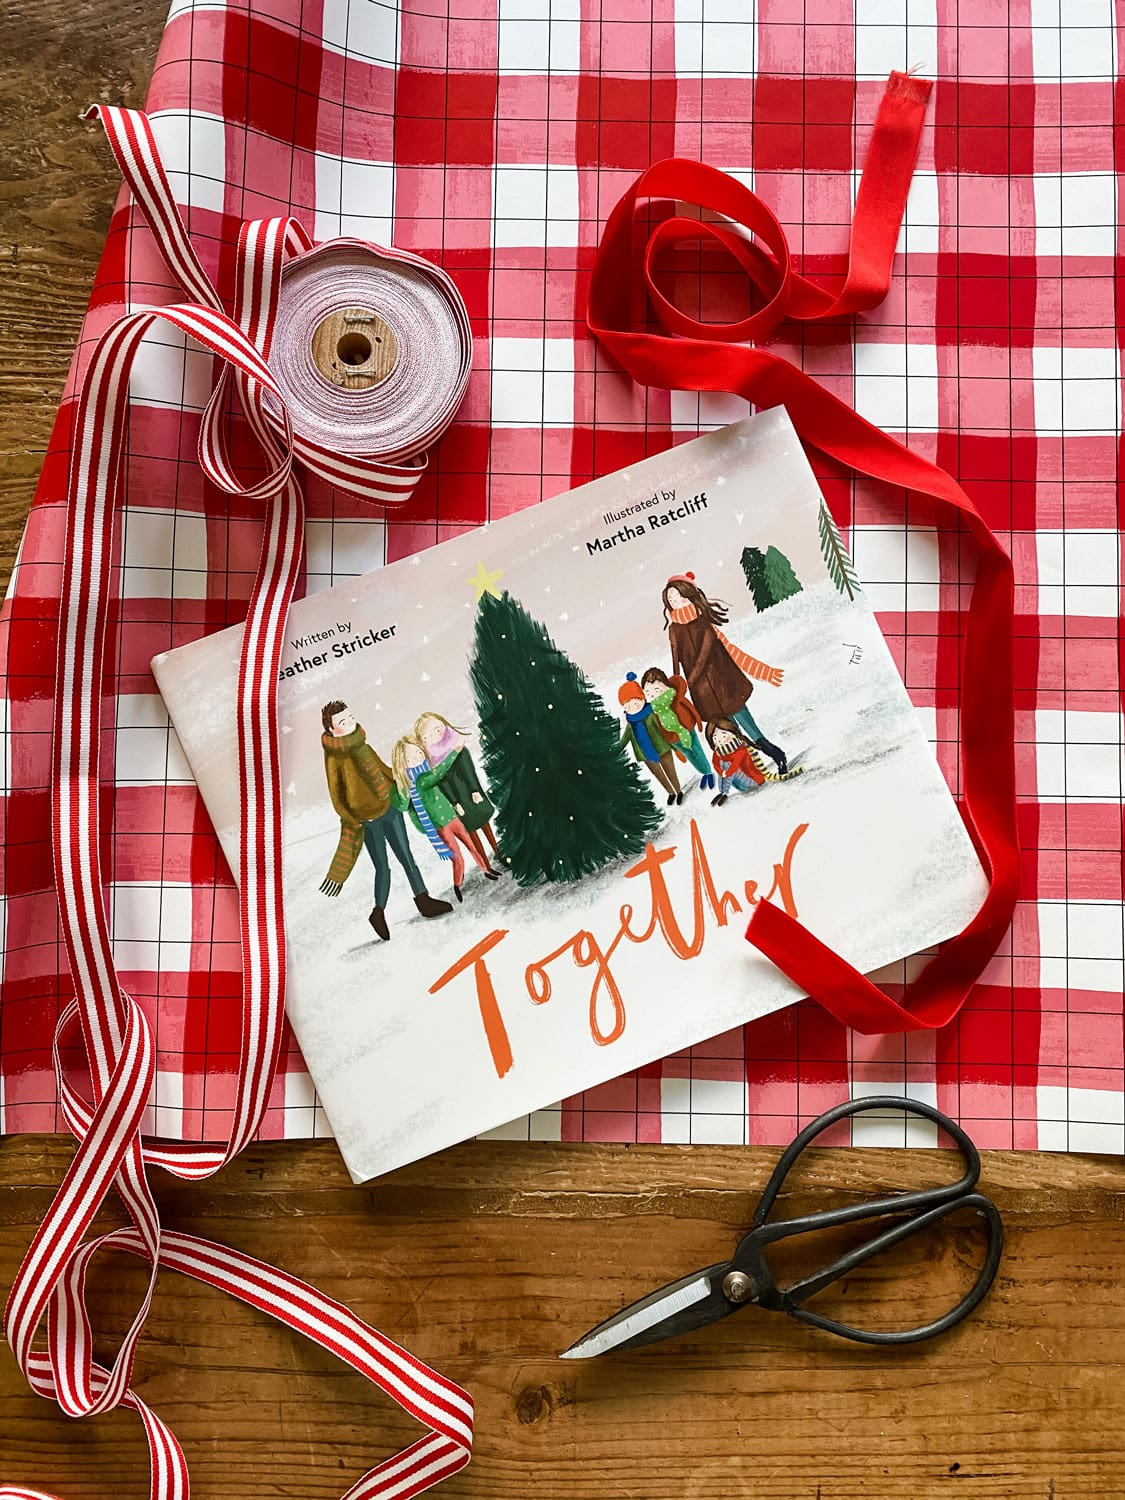 Together book on table with Christmas gift wrap and presents